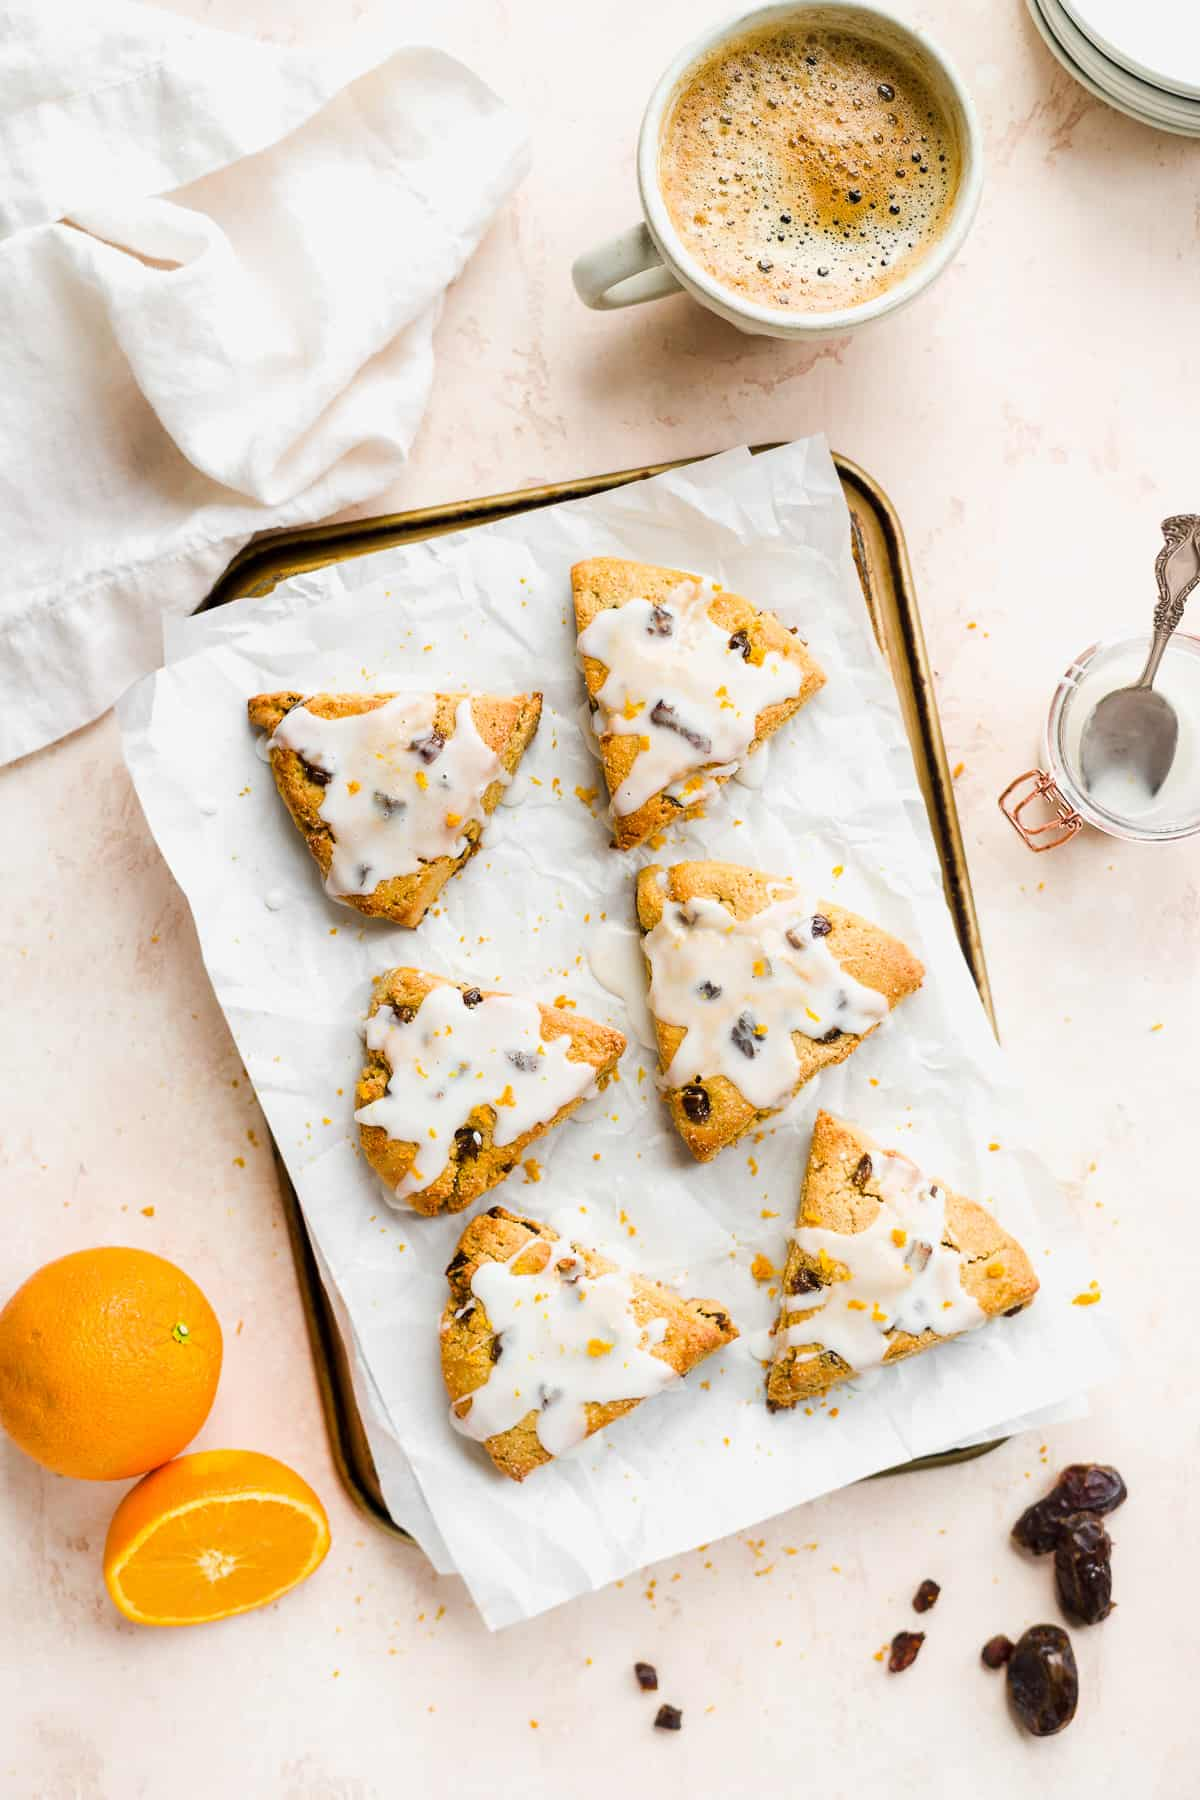 Golden scones on white paper on top of a baking sheet with orange and dates on the surface.